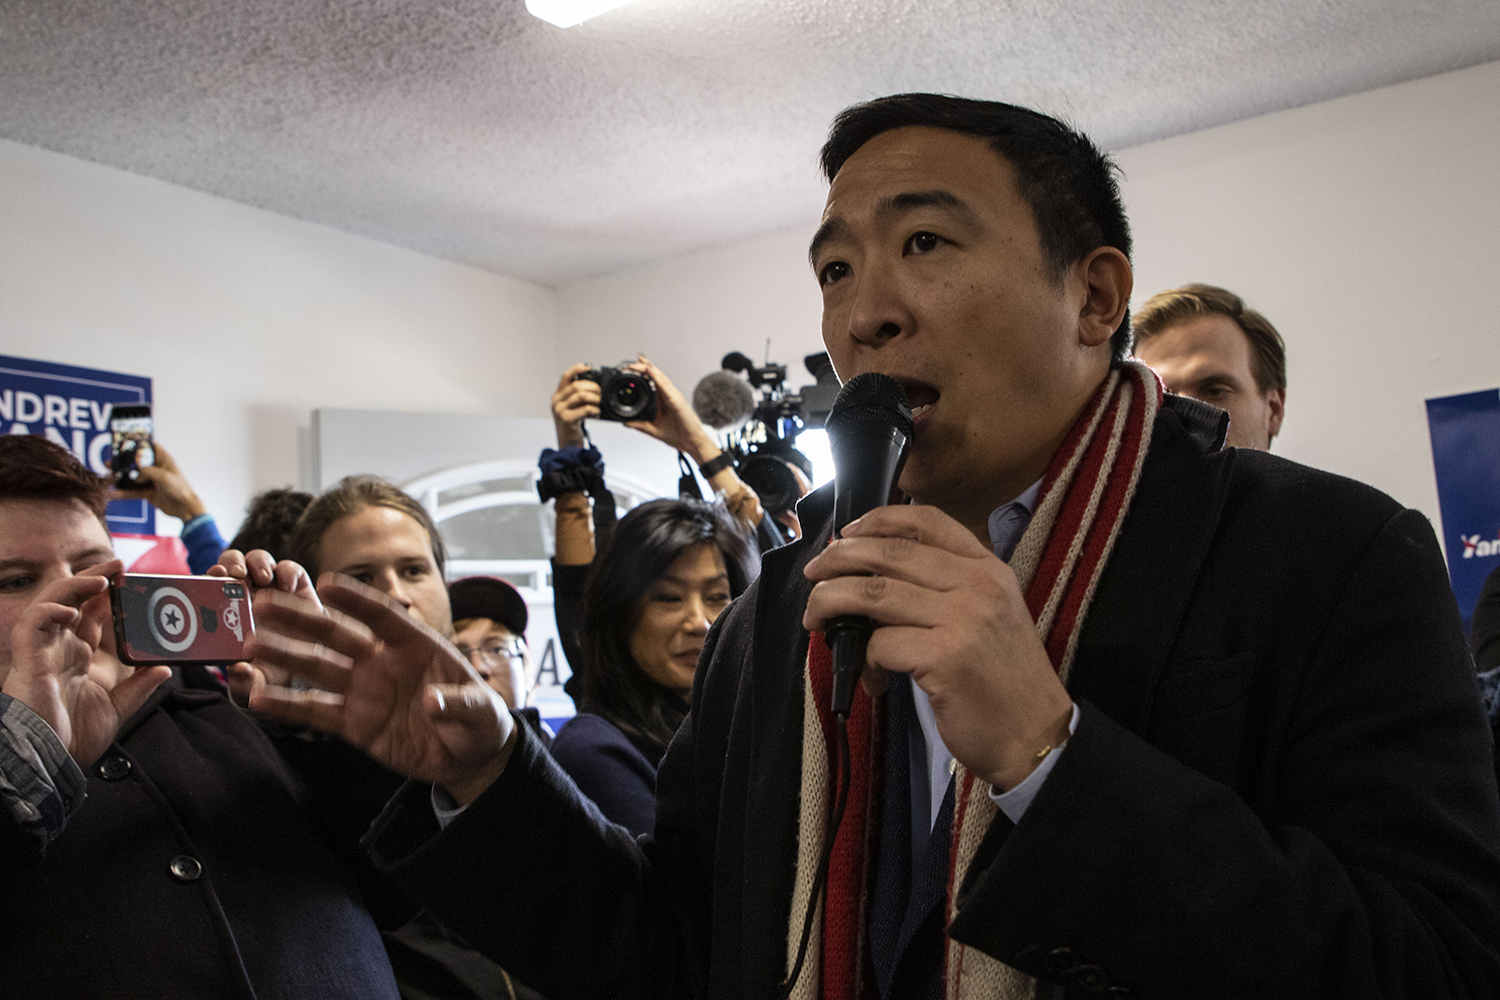 Democratic candidate Andrew Yang addresses fans during a meet and greet in his Iowa City campaign office on Feb. 3. Yang greeted fans and cheered them on for the caucuses later tonight.